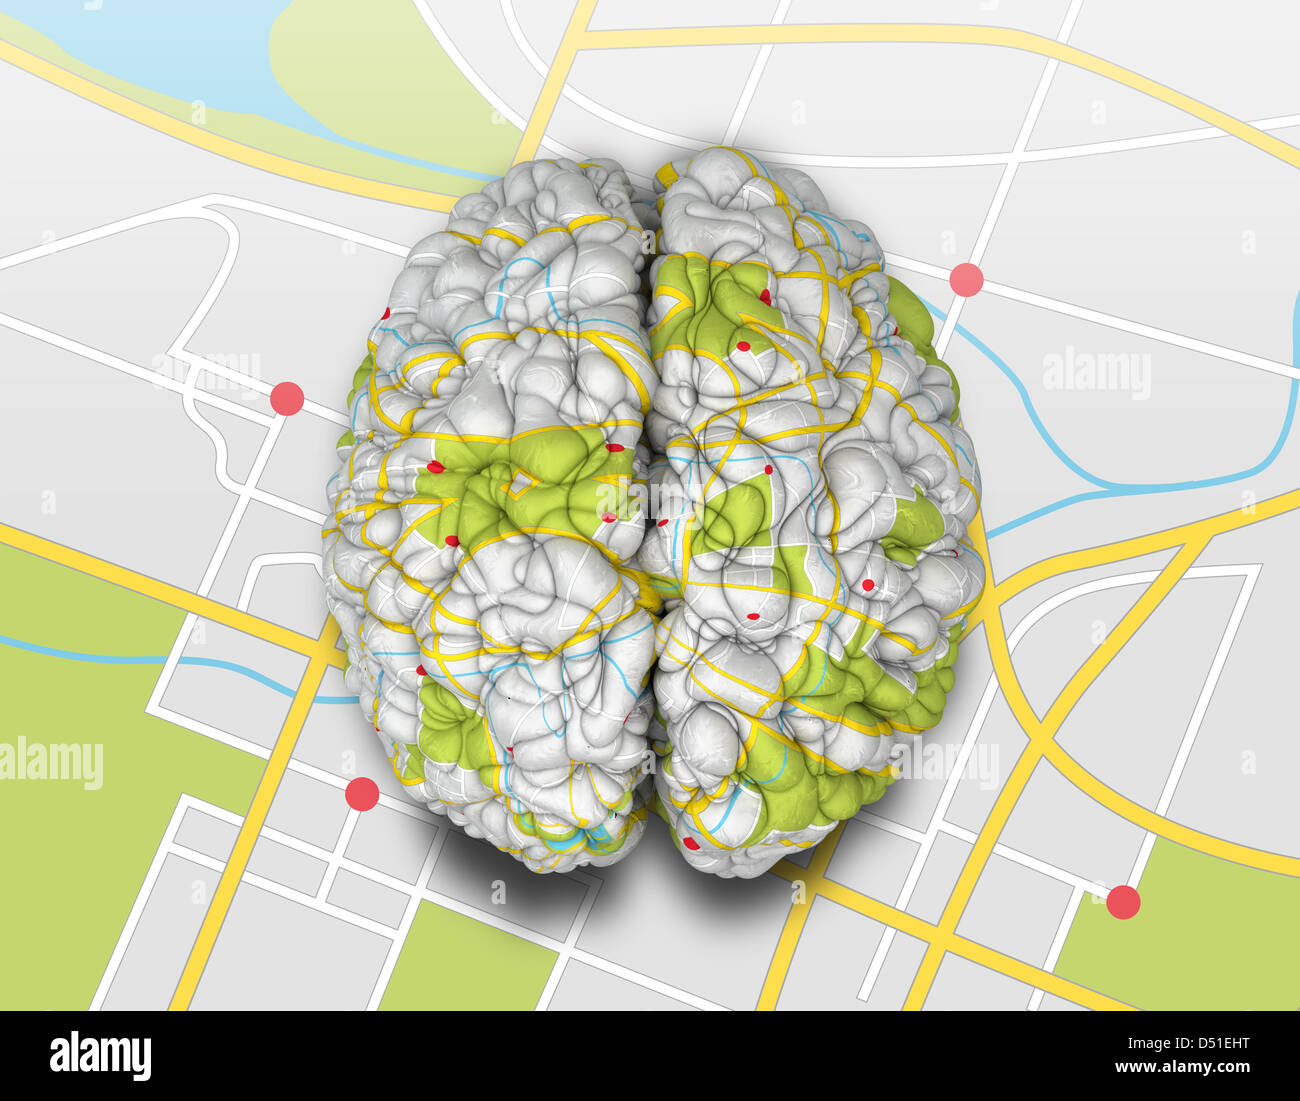 A brain wrapped with a simple road map texture laying on a